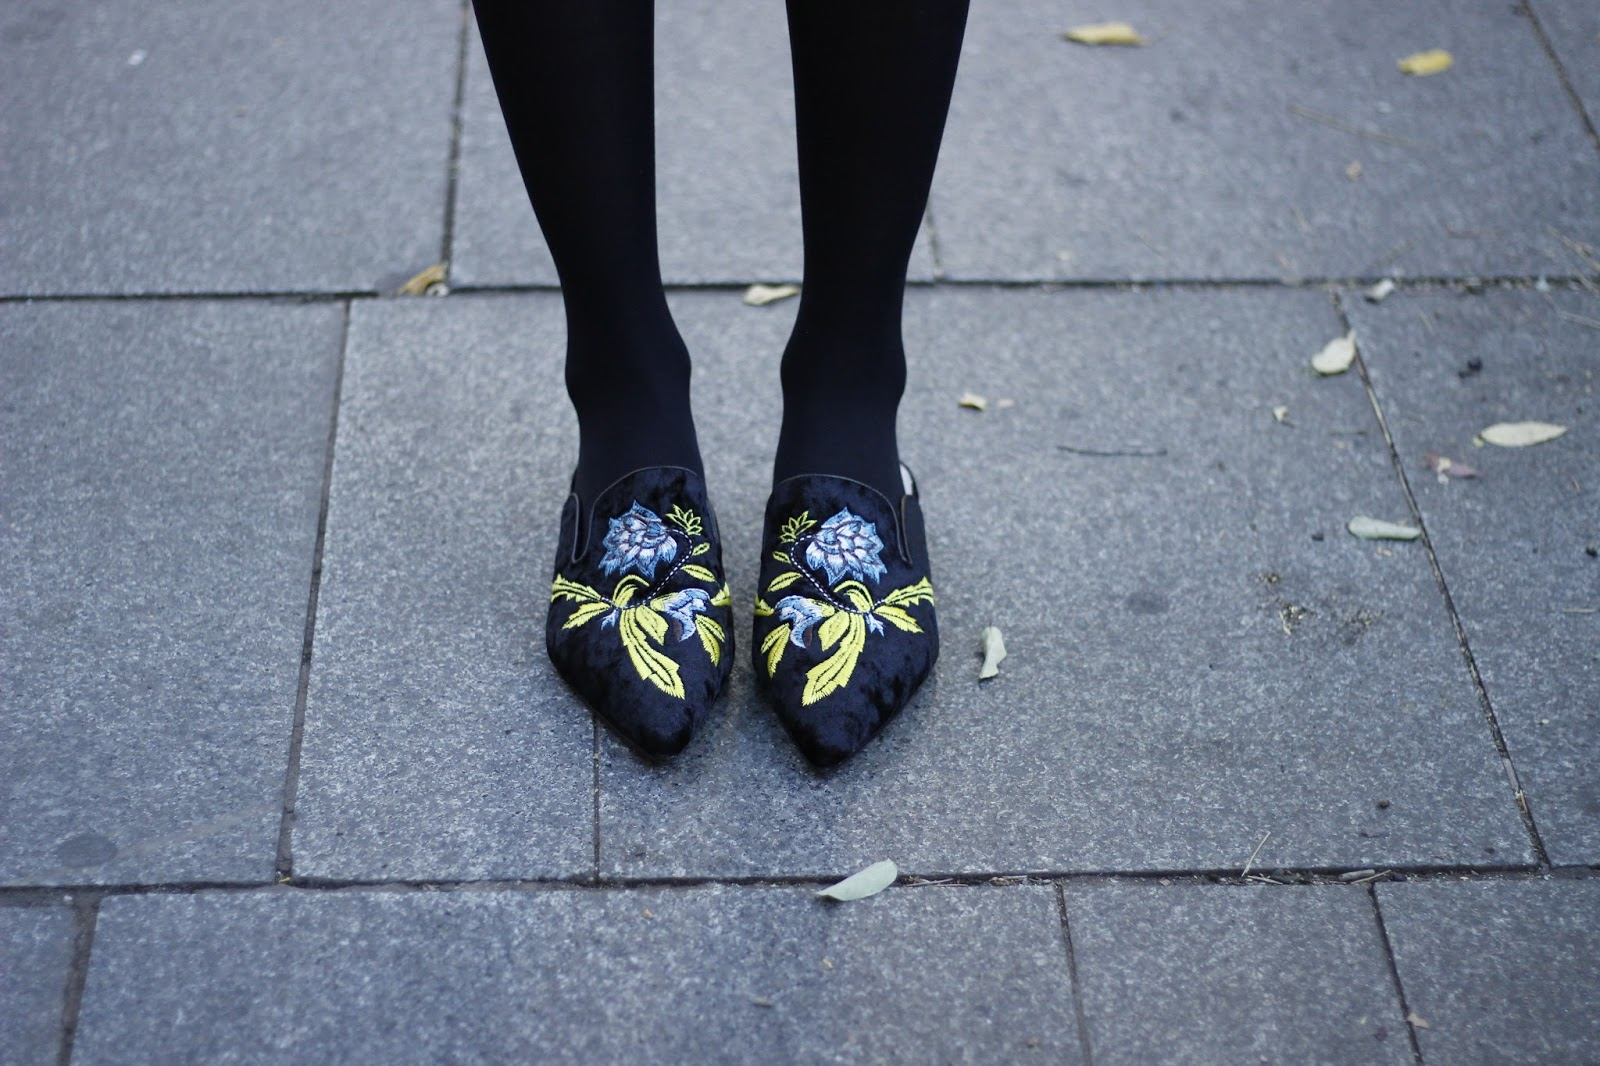 floral-embroidery-mules-corduroy-bag-ruffle-top-street-style-look